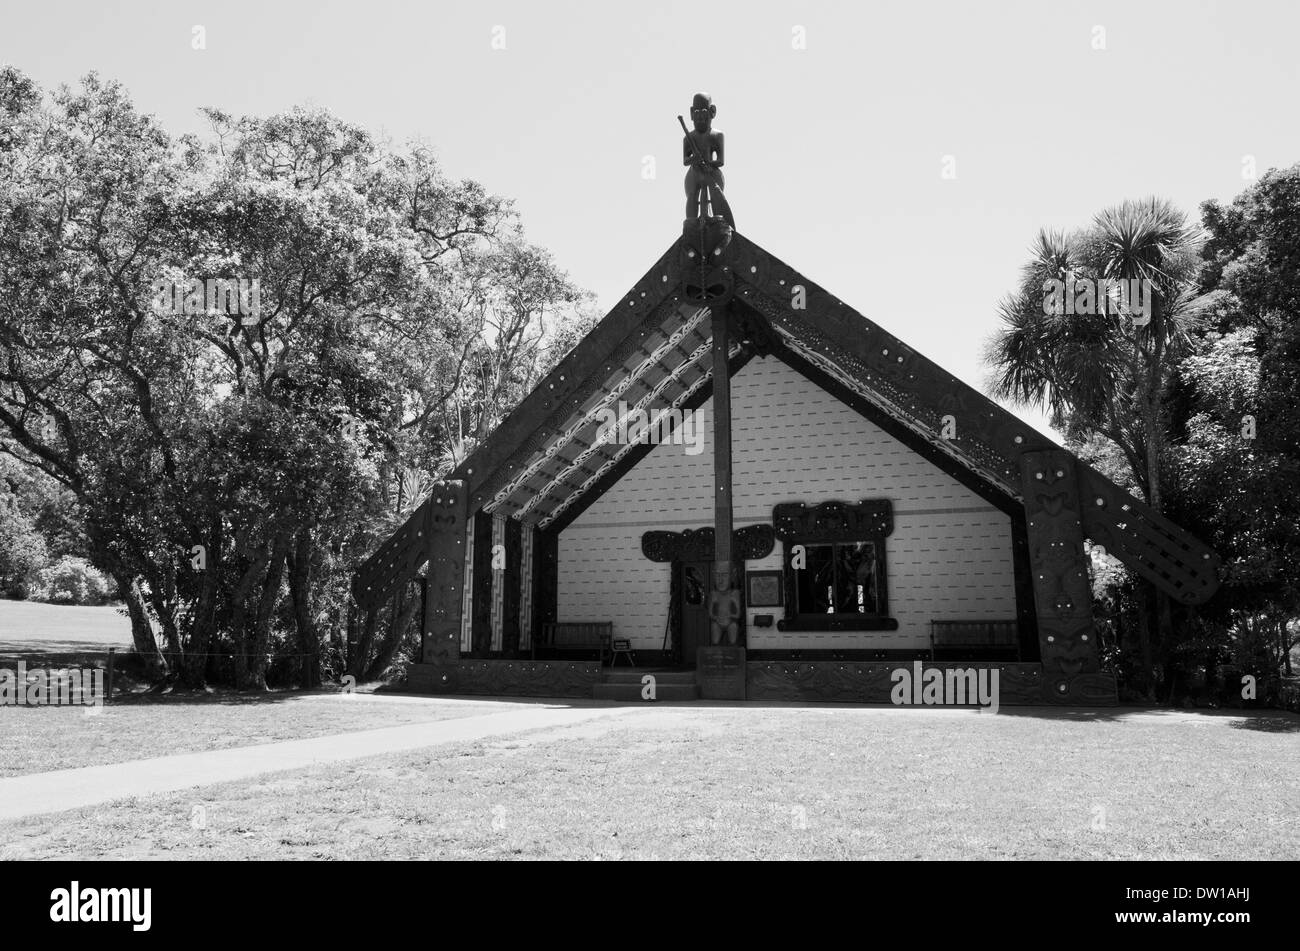 Exterior view of the Maori Marae (meeting house) in the Waitangi National Reserve, Bay of Islands, Far North District, Northland - Stock Image